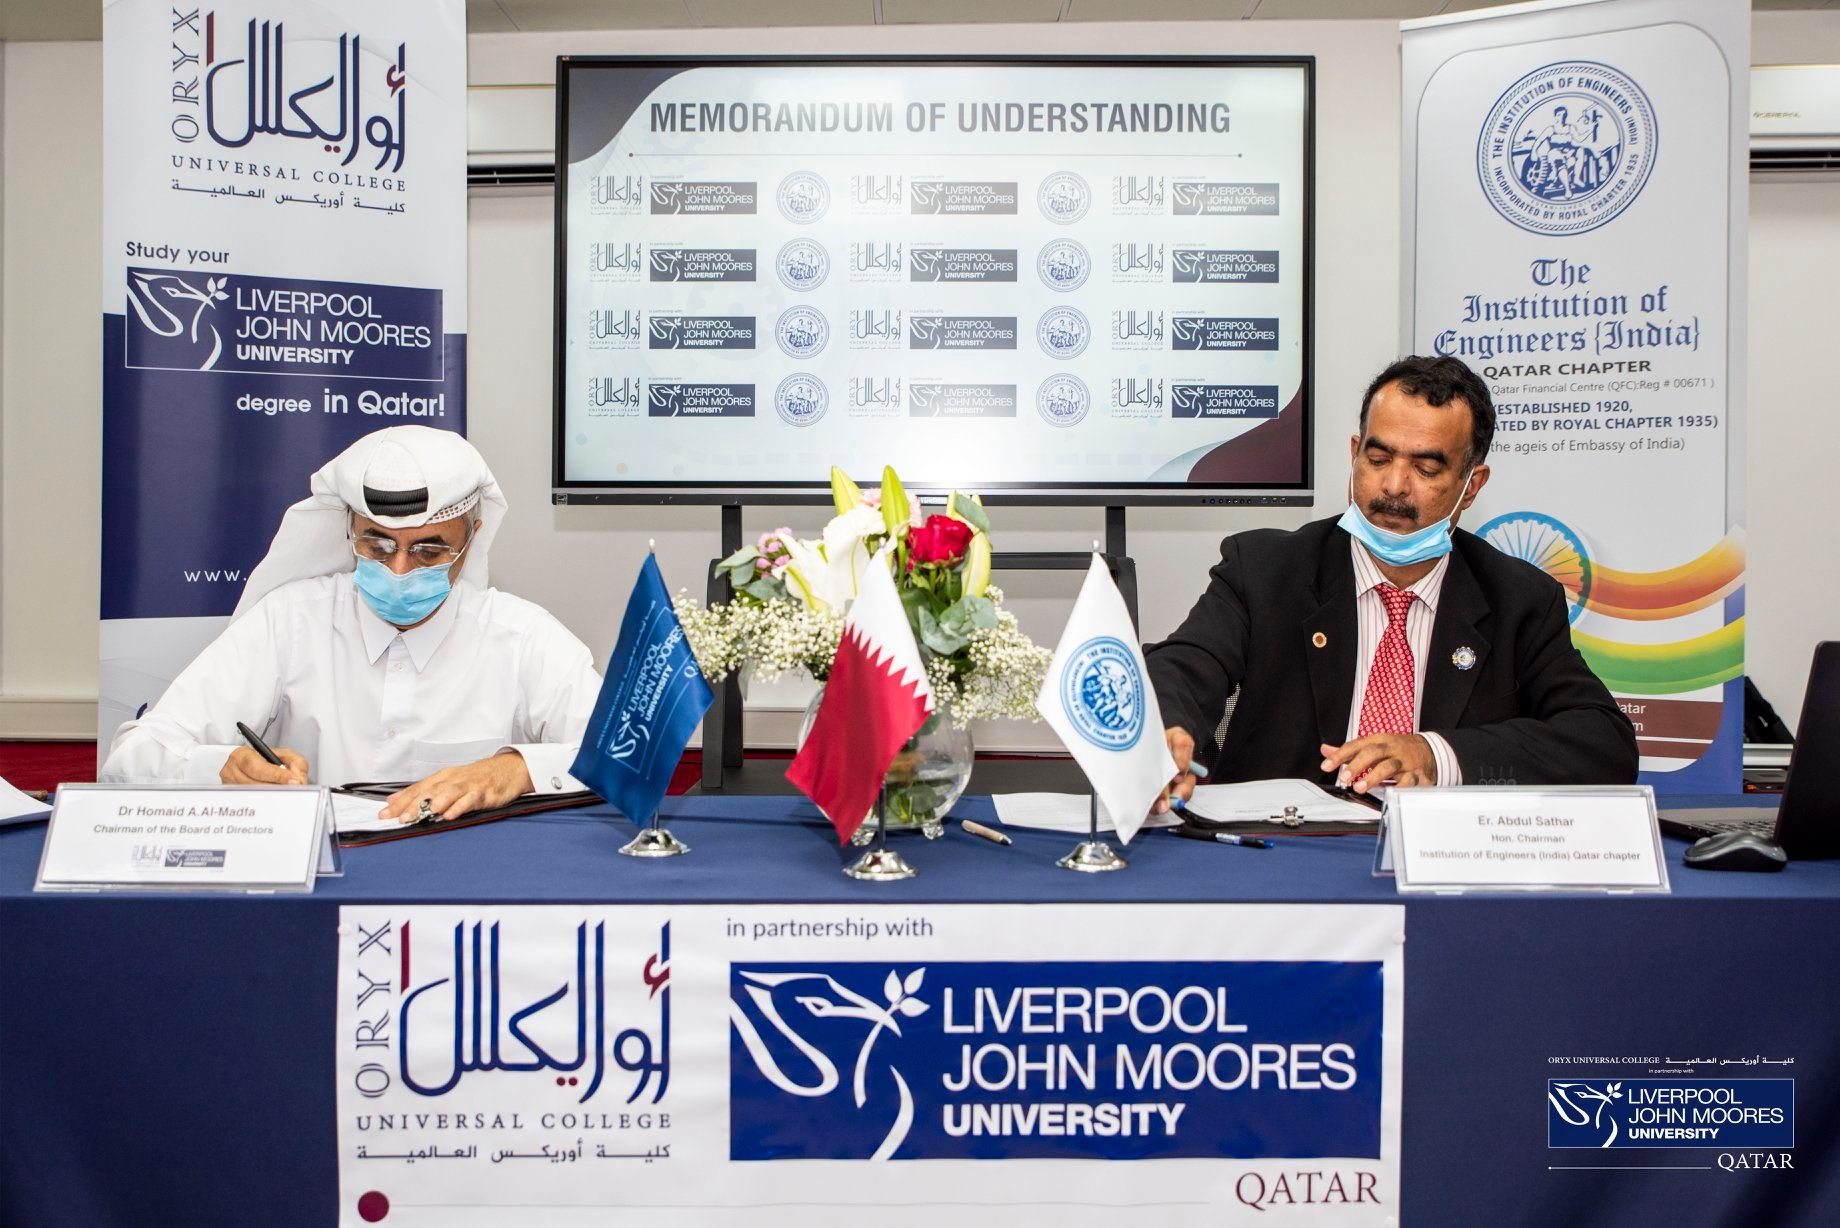 MOU signed between IEI Qatar Chapter, Liverpool John Moores University and Oryx Universal College, Qatar